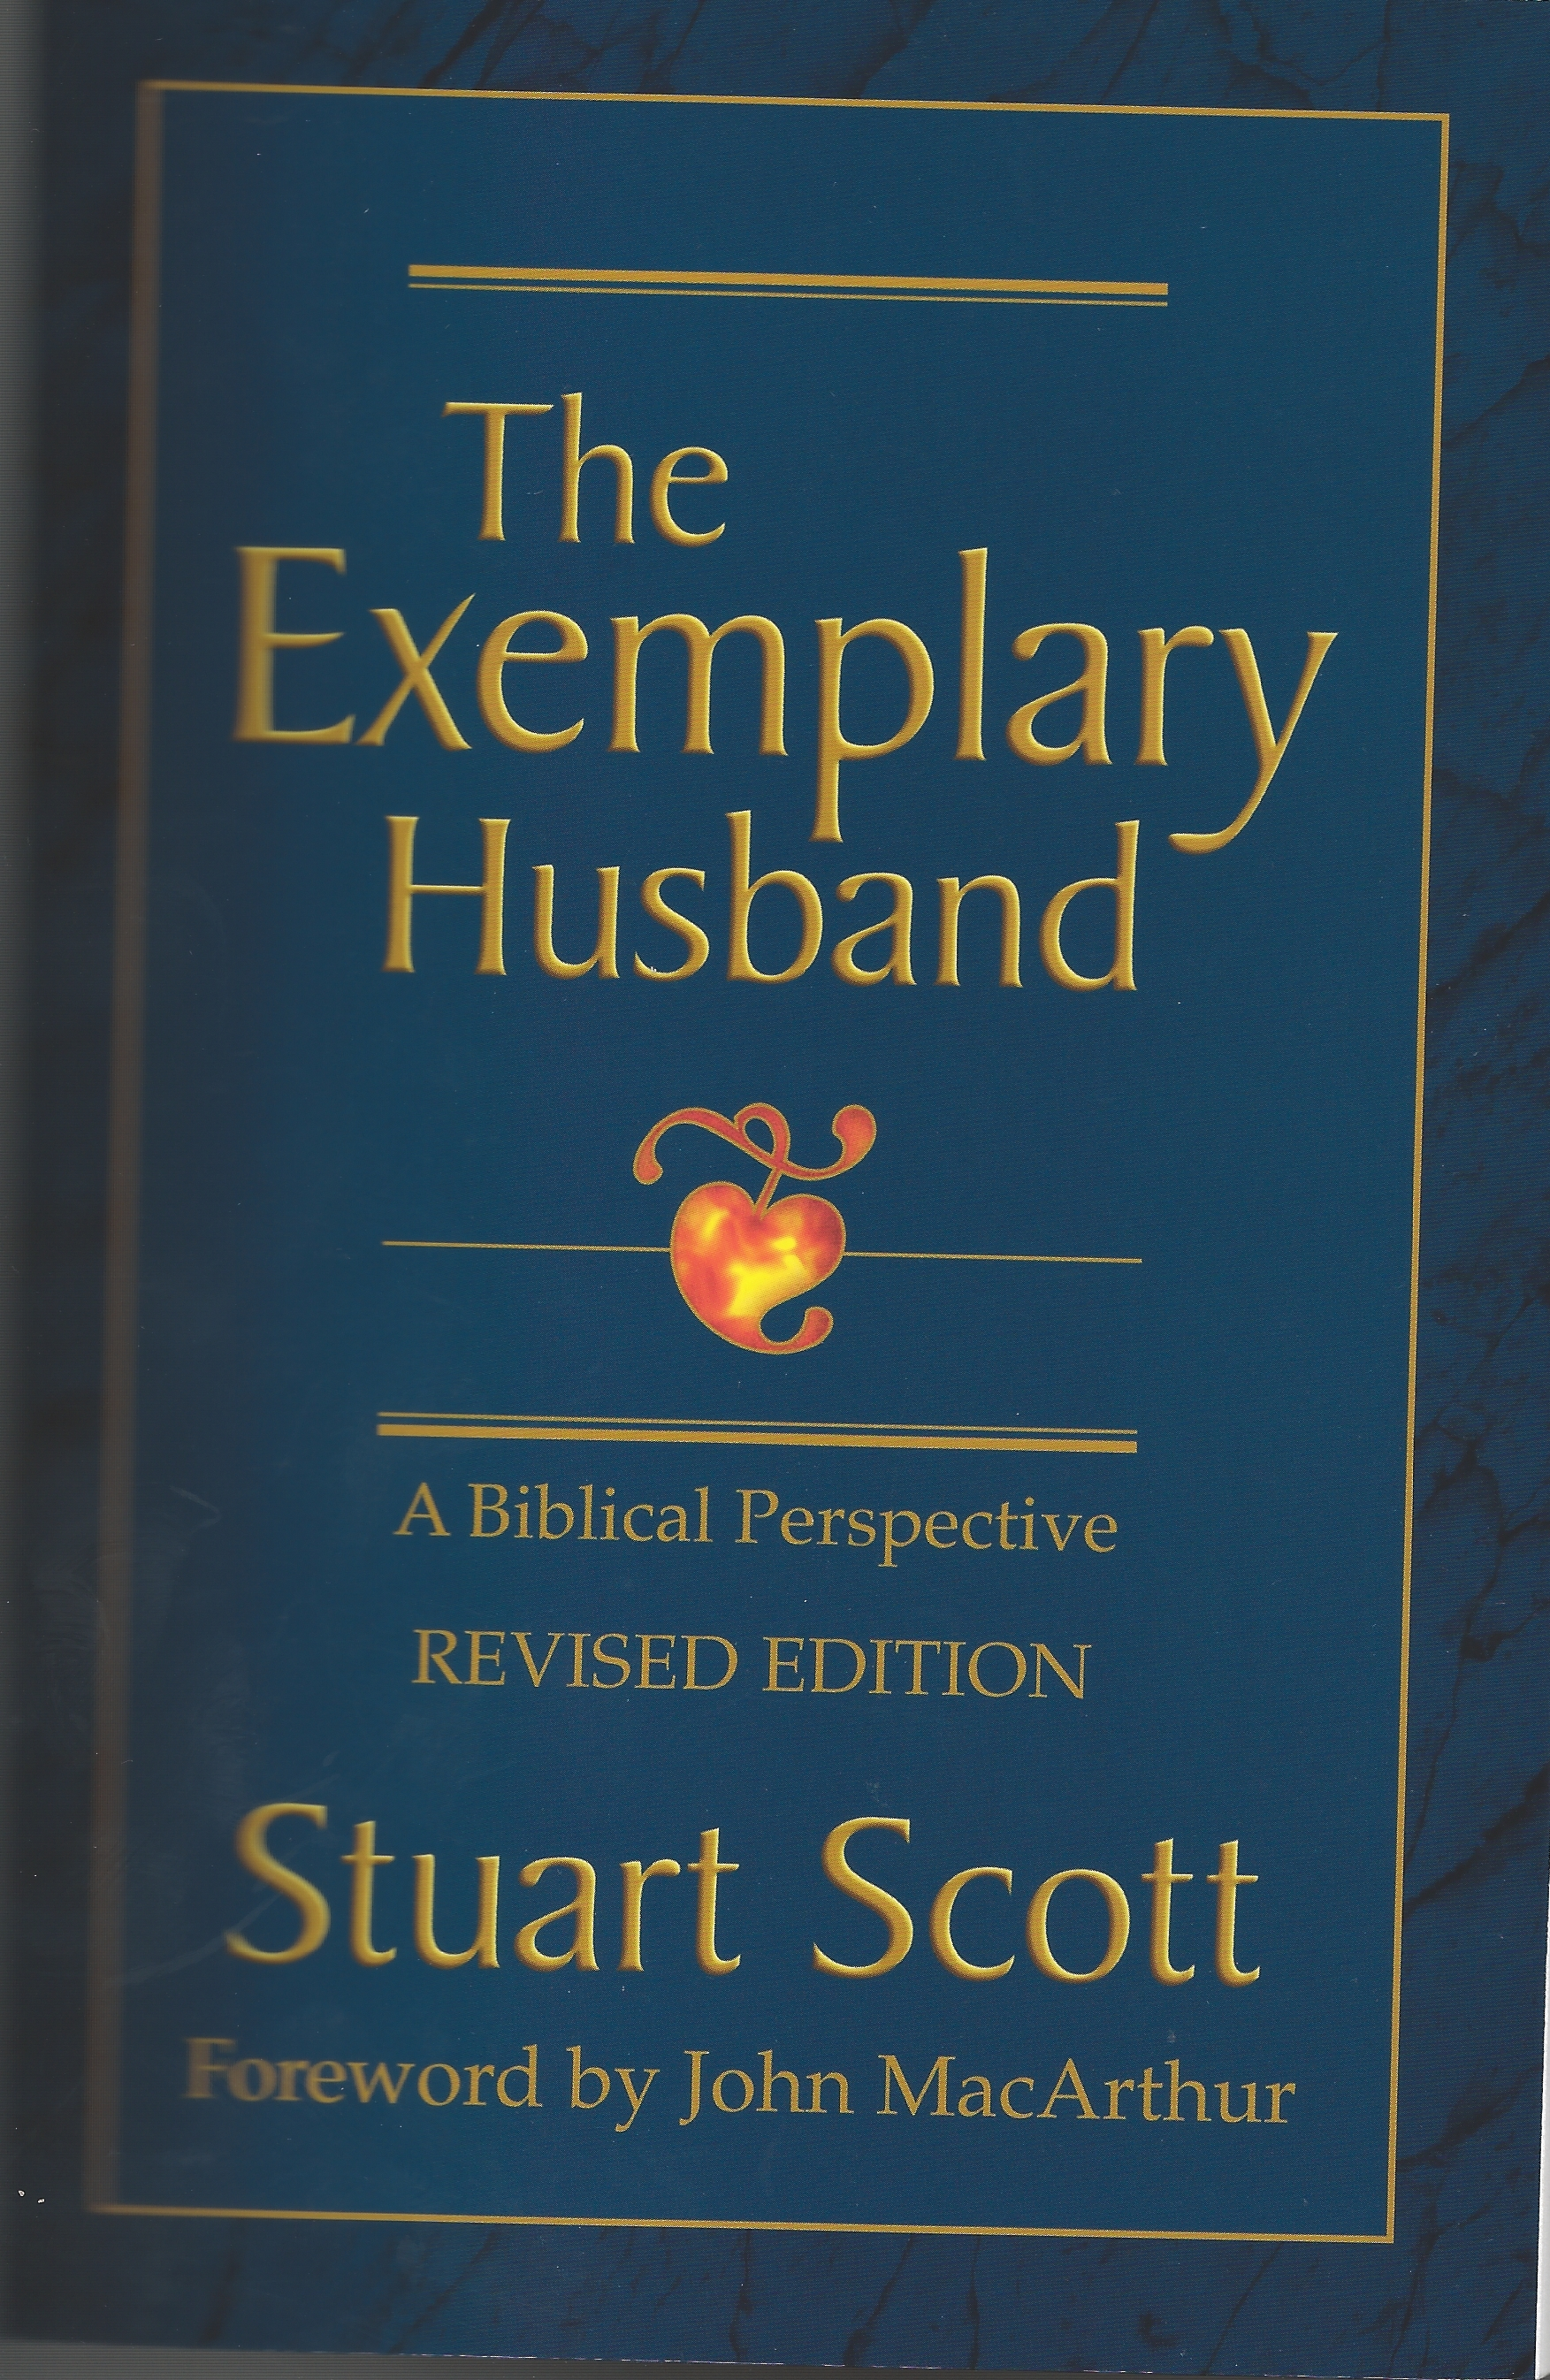 THE EXEMPLARY HUSBAND Stuart Scott